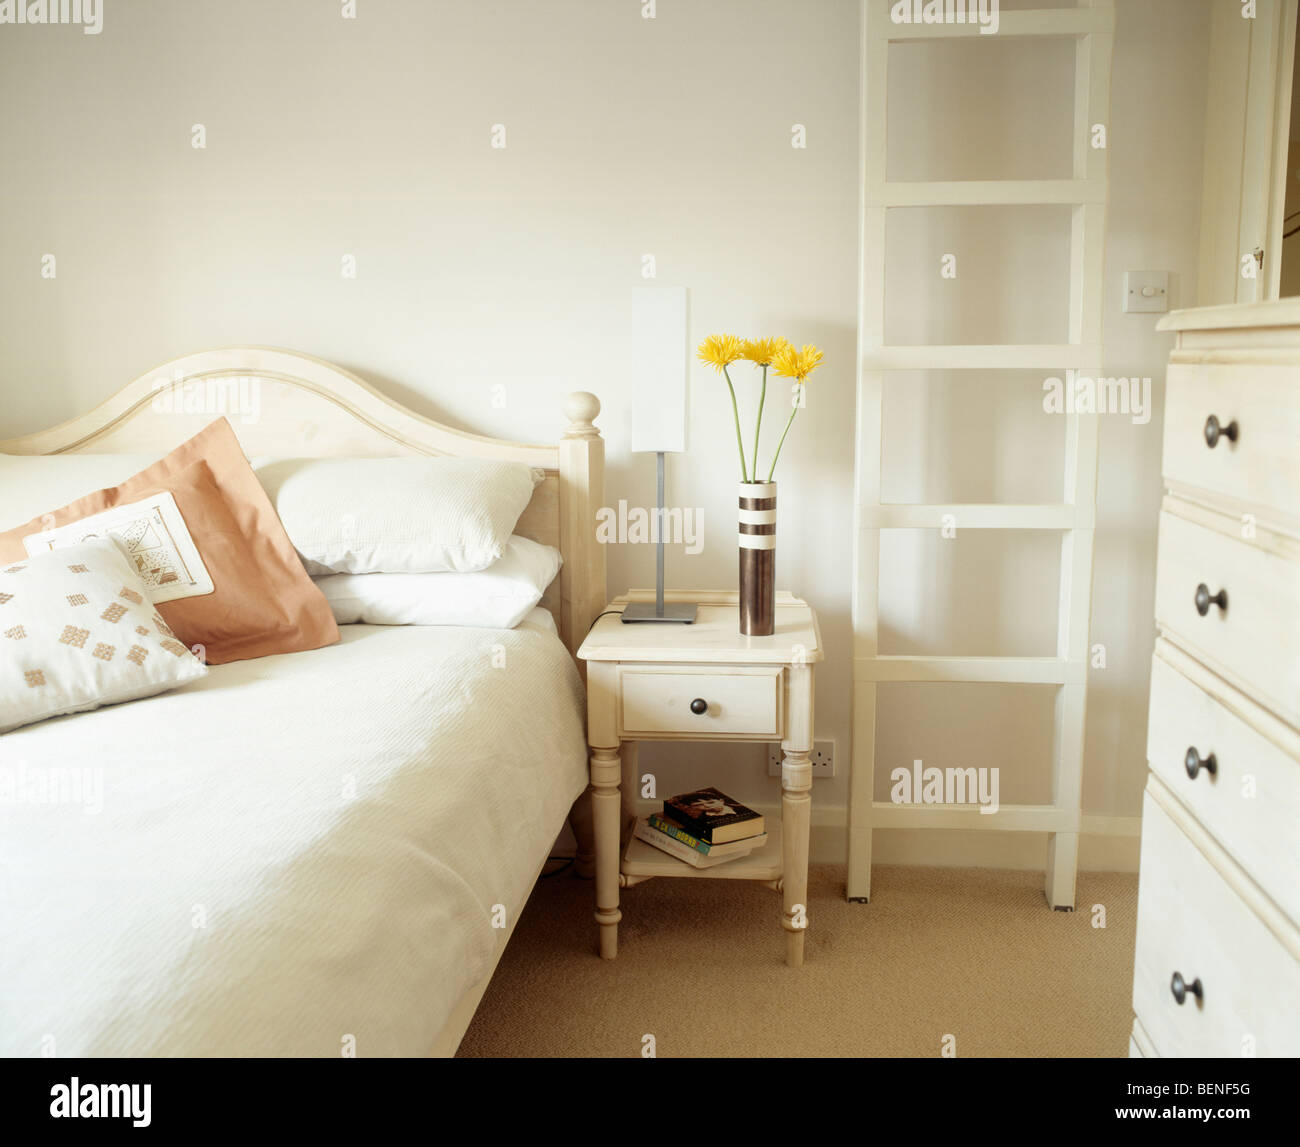 White Ladder And Small White Bedside Table Beside Bed With Cream